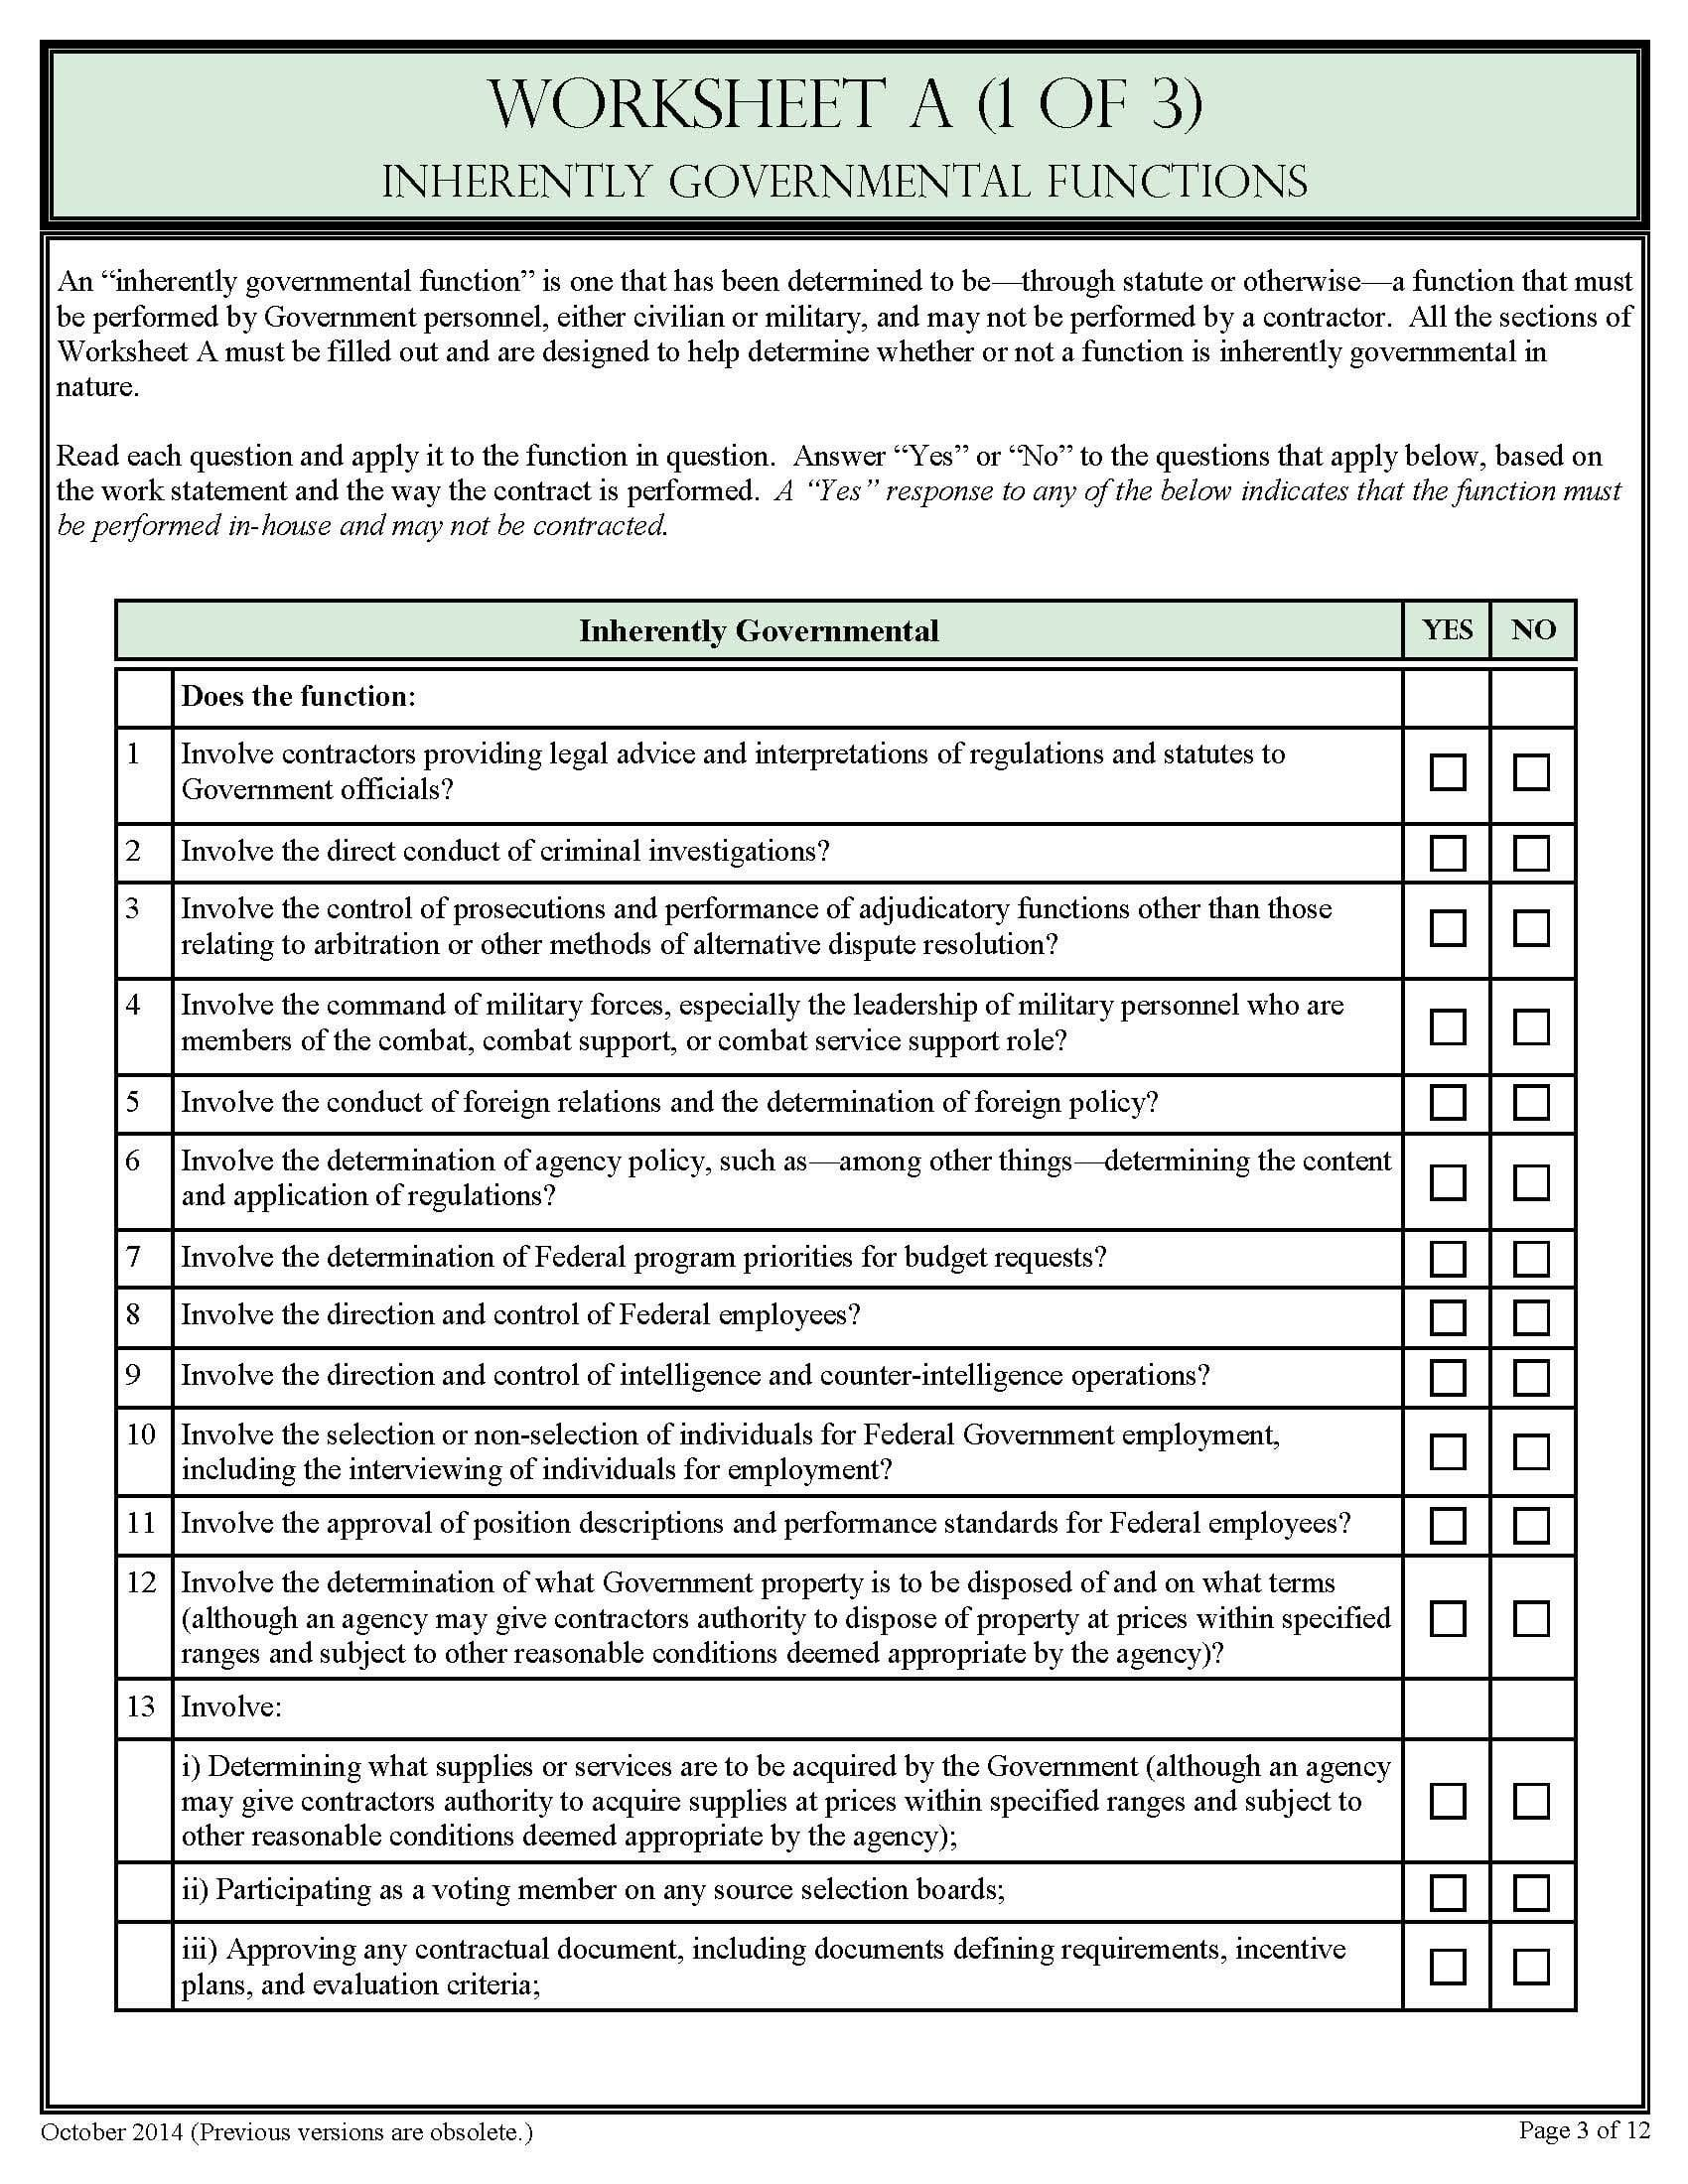 Deliberate Risk Assessment Worksheet For Range